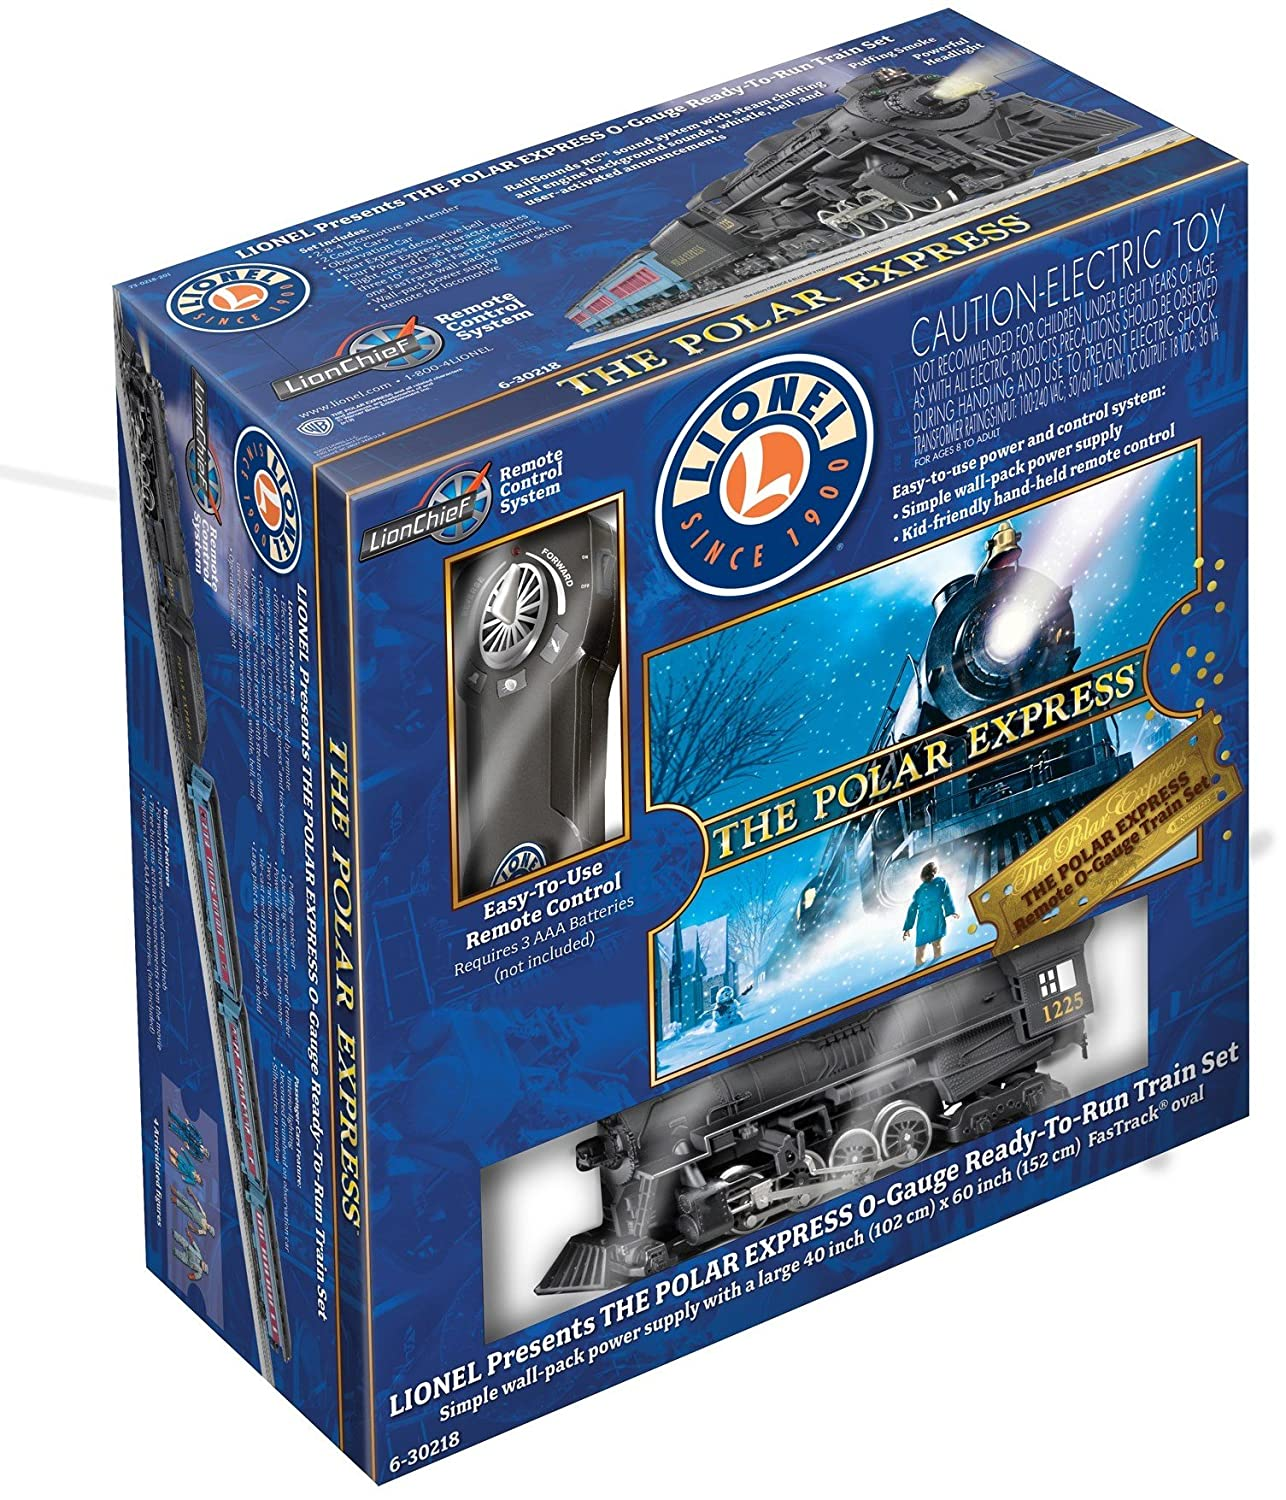 Lionel Polar Express Remote Train Set - O-Gauge